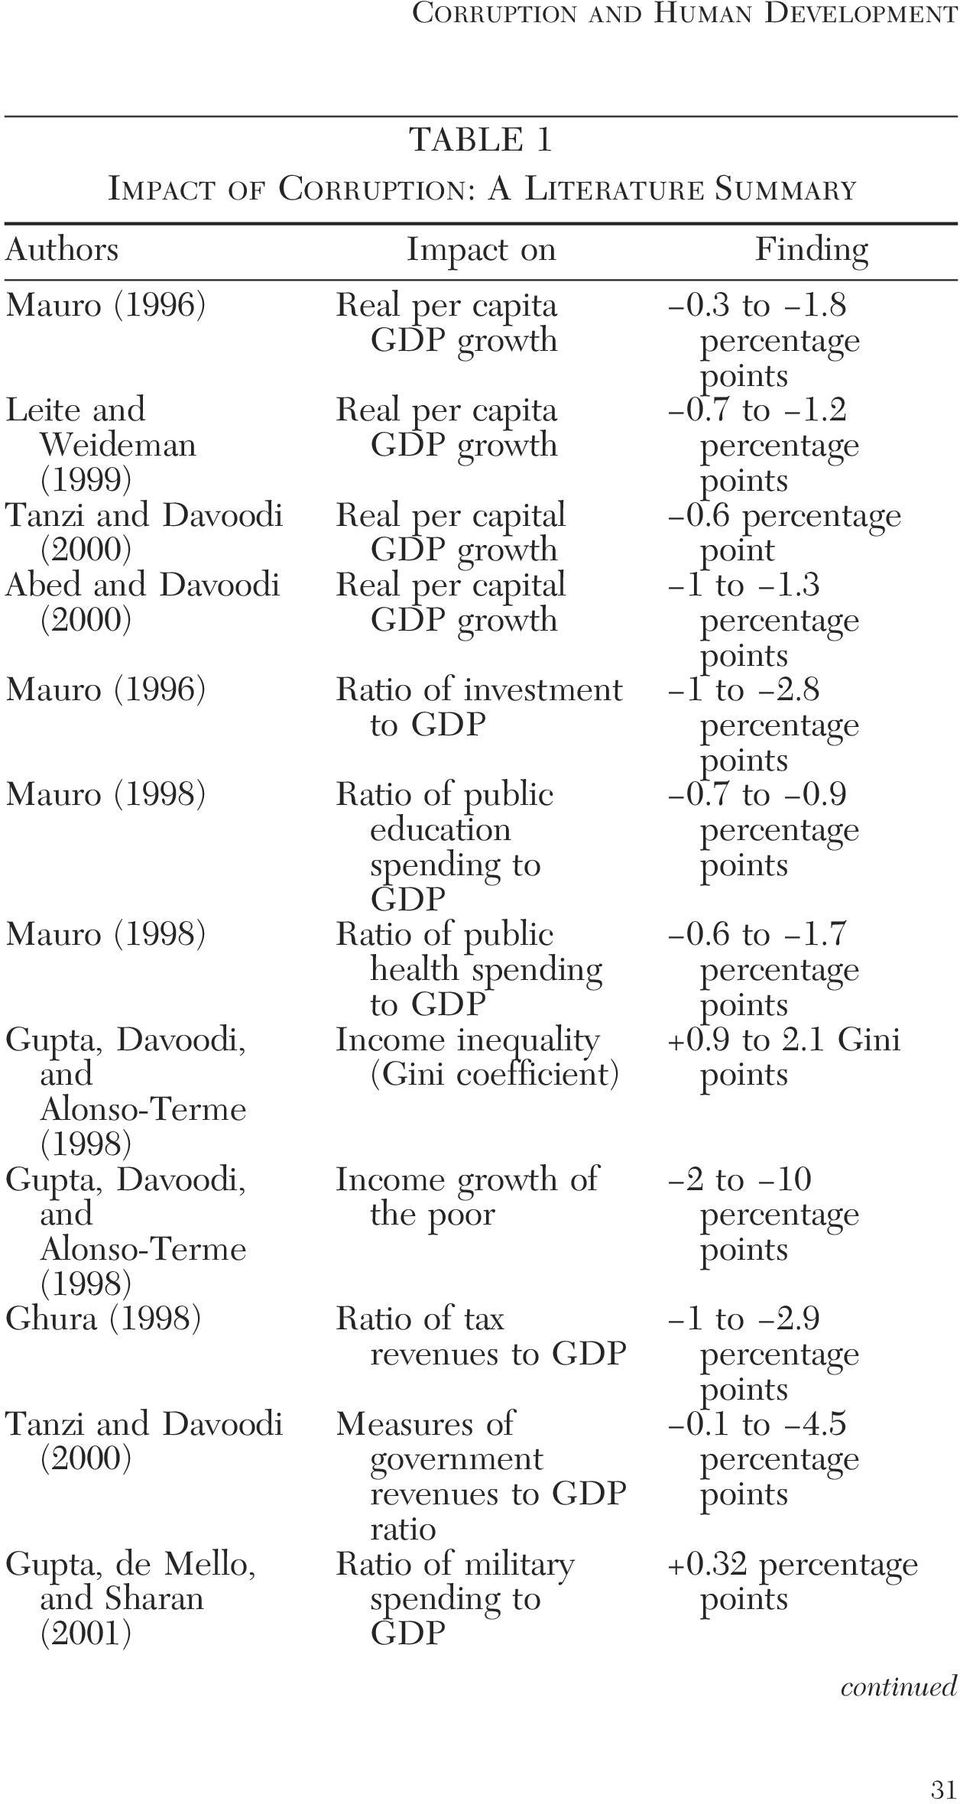 Alonso-Terme (1998) Ghura (1998) Tanzi and Davoodi (2000) Gupta, de Mello, and Sharan (2001) Real per capita GDP growth Real per capital GDP growth Real per capital GDP growth Ratio of investment to